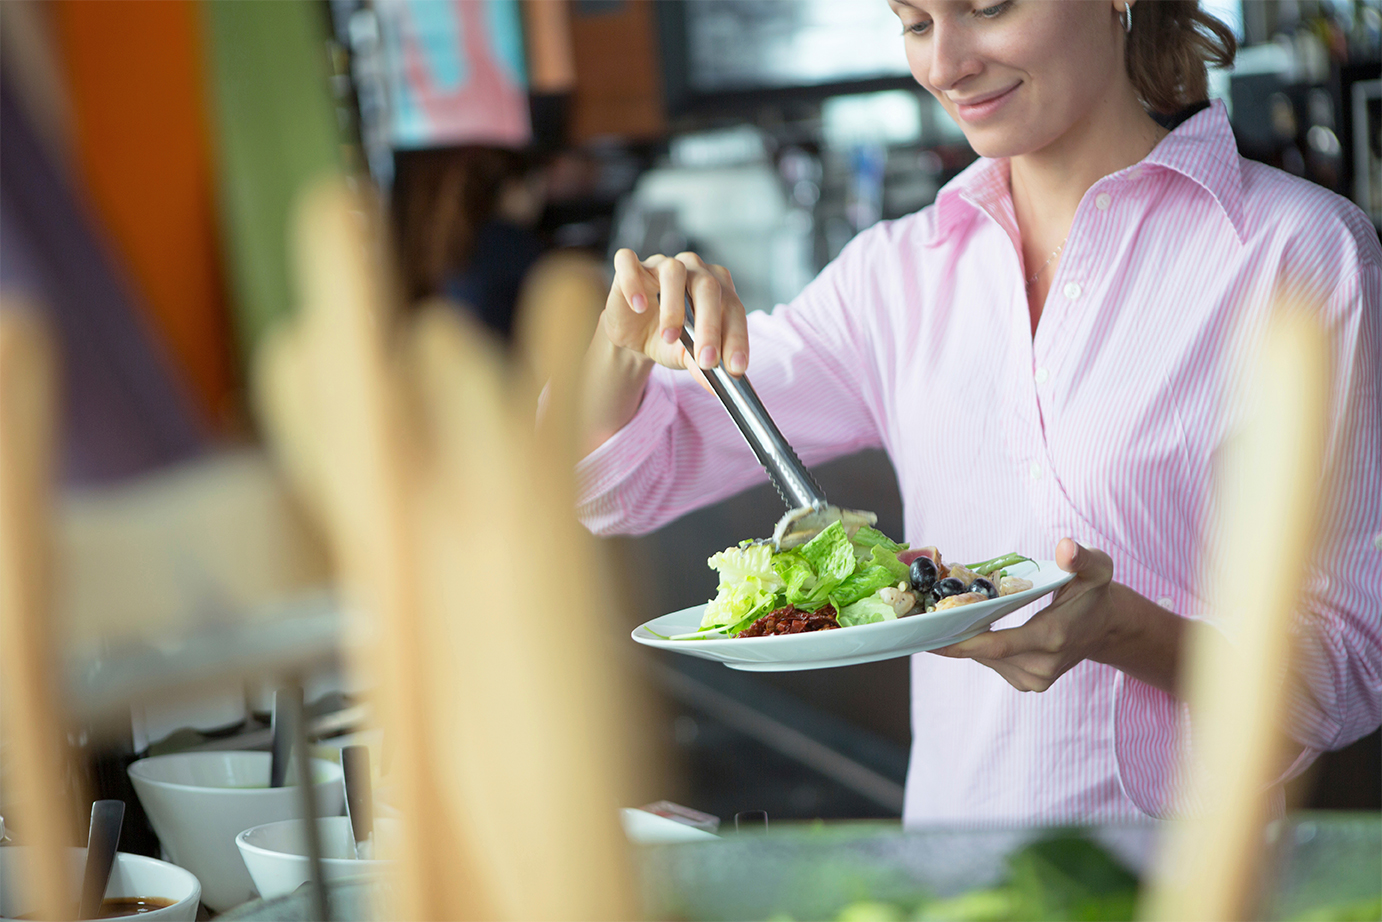 A woman puts salad on her plate while smiling